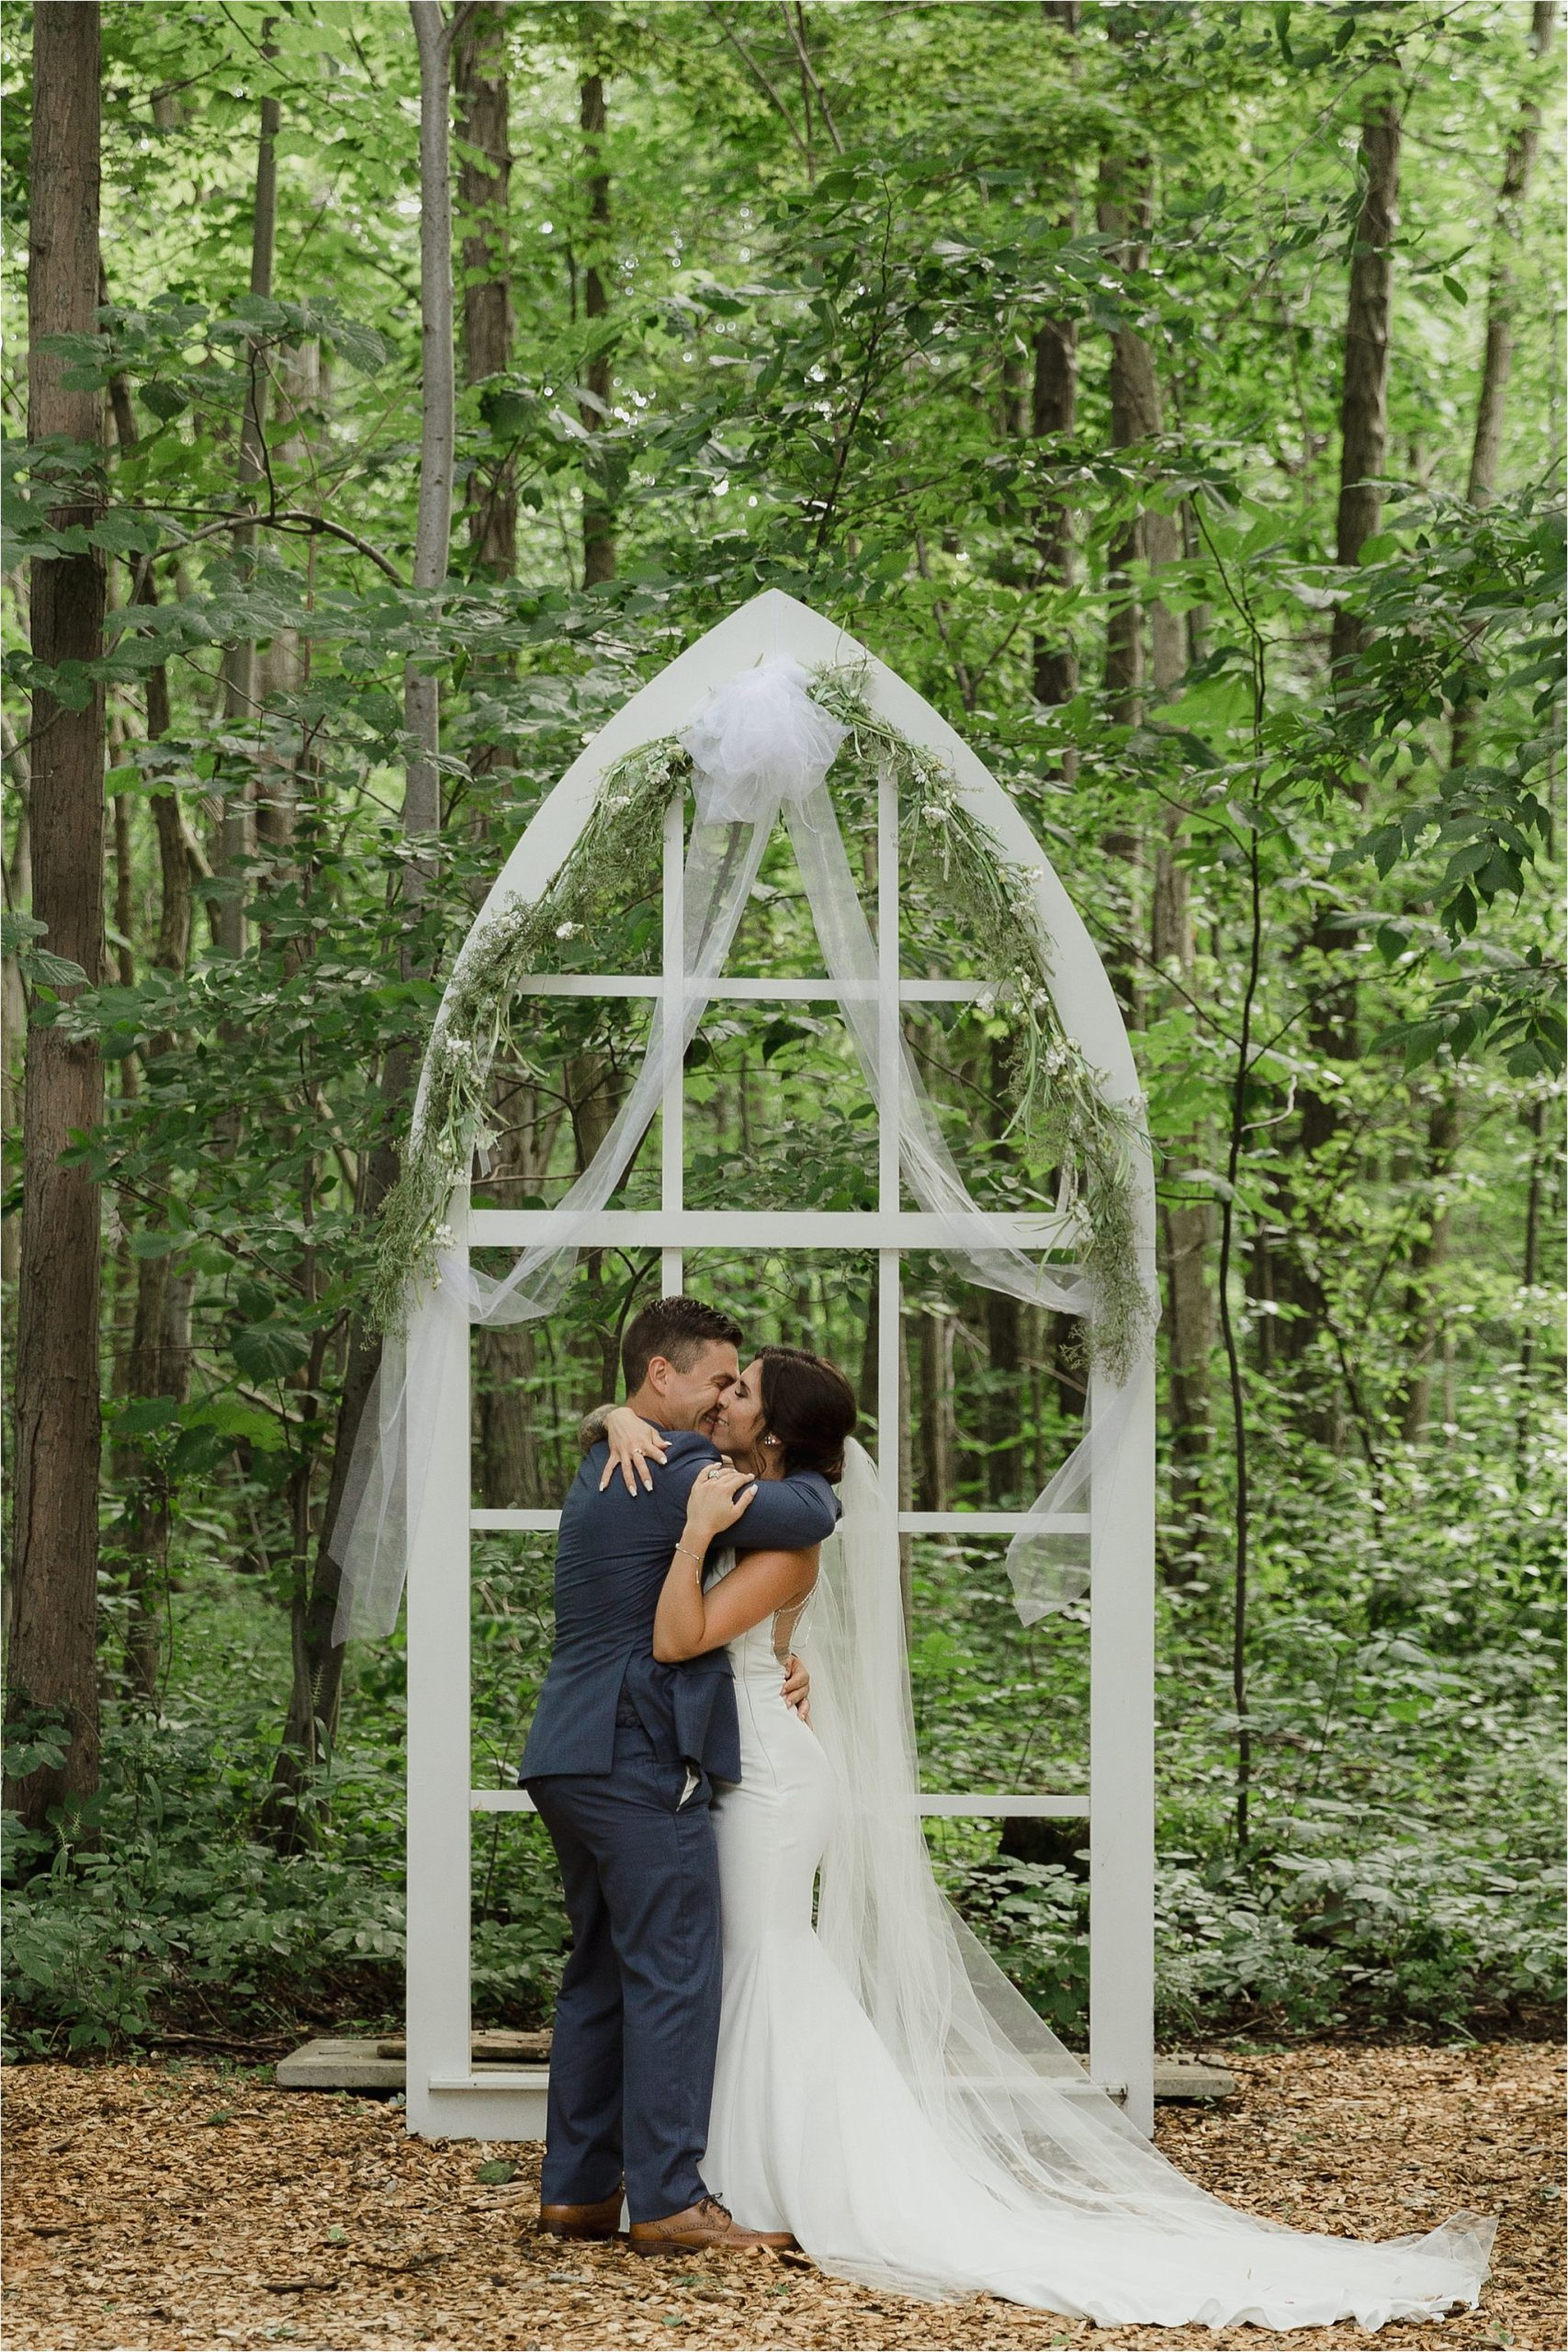 The Clearing ceremony wedding venue bride and groom first kiss in front of arbor